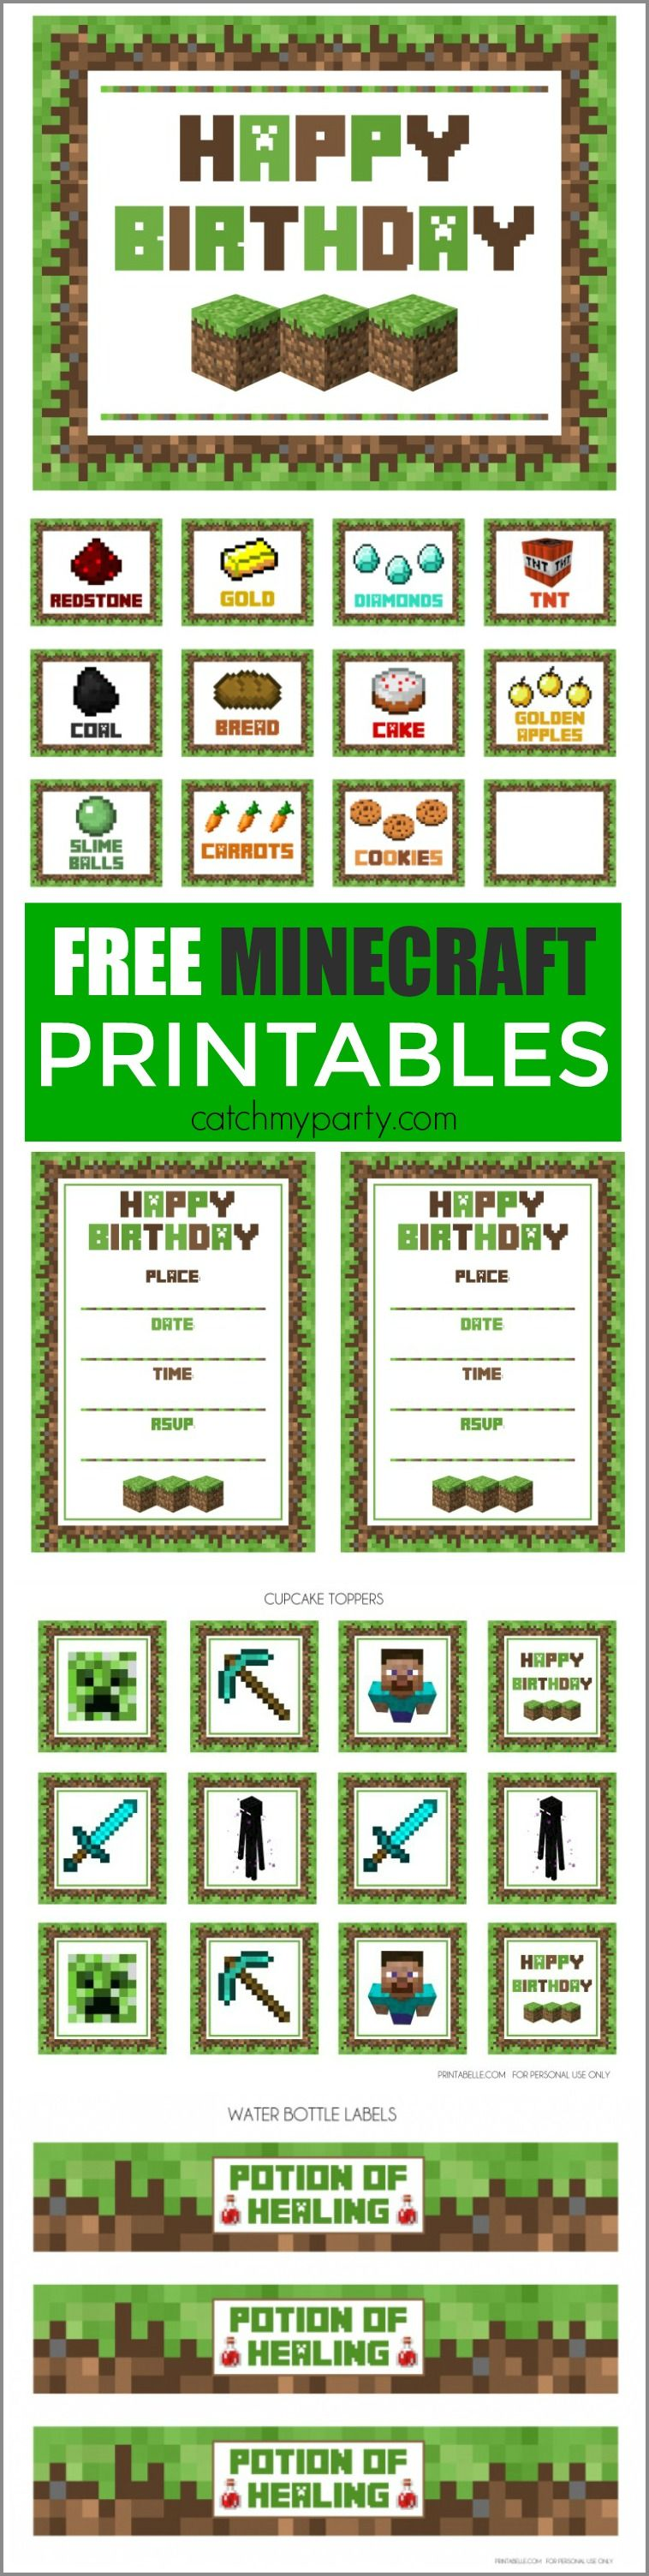 Free Minecraft Printables Party Printables Birthdays And Free